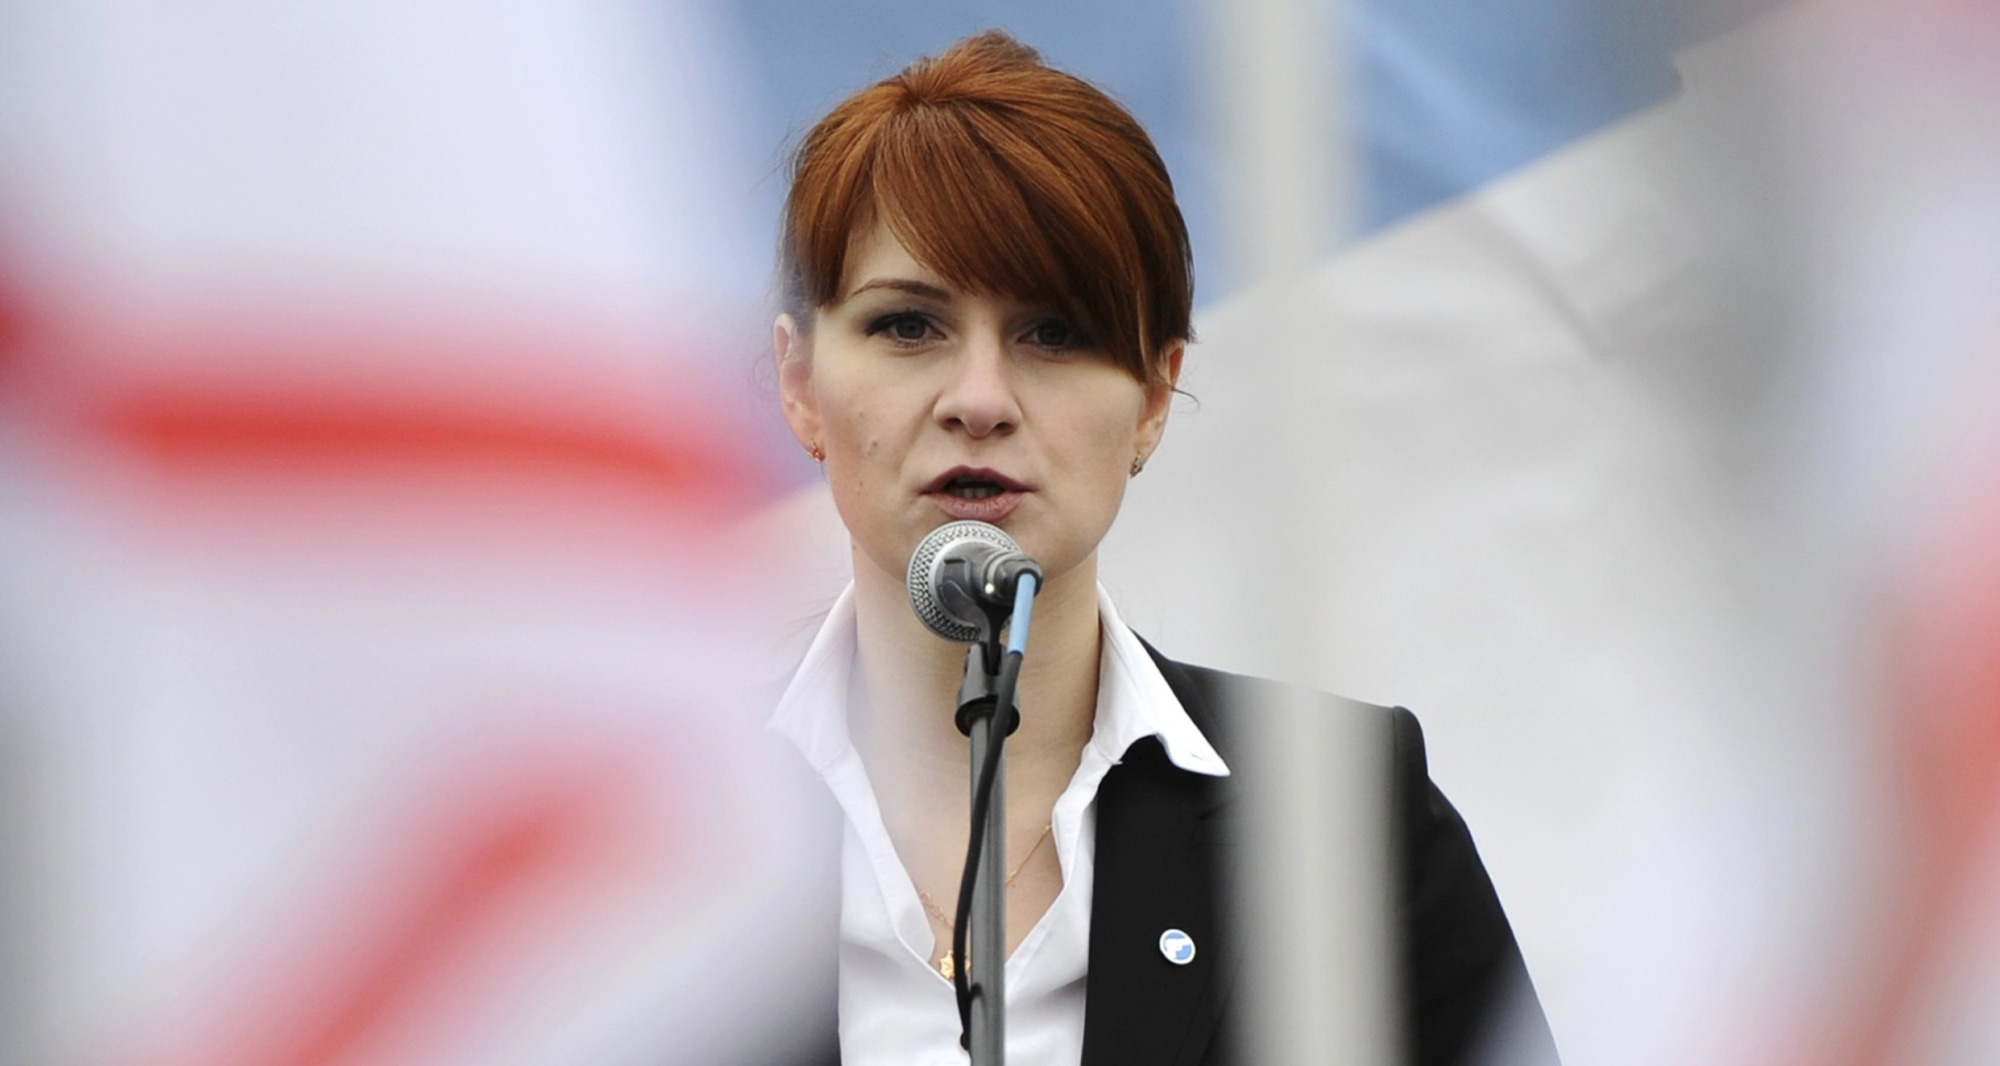 Accused Russian agent Mariia Butina tried to trade sex for influence, say prosecutors